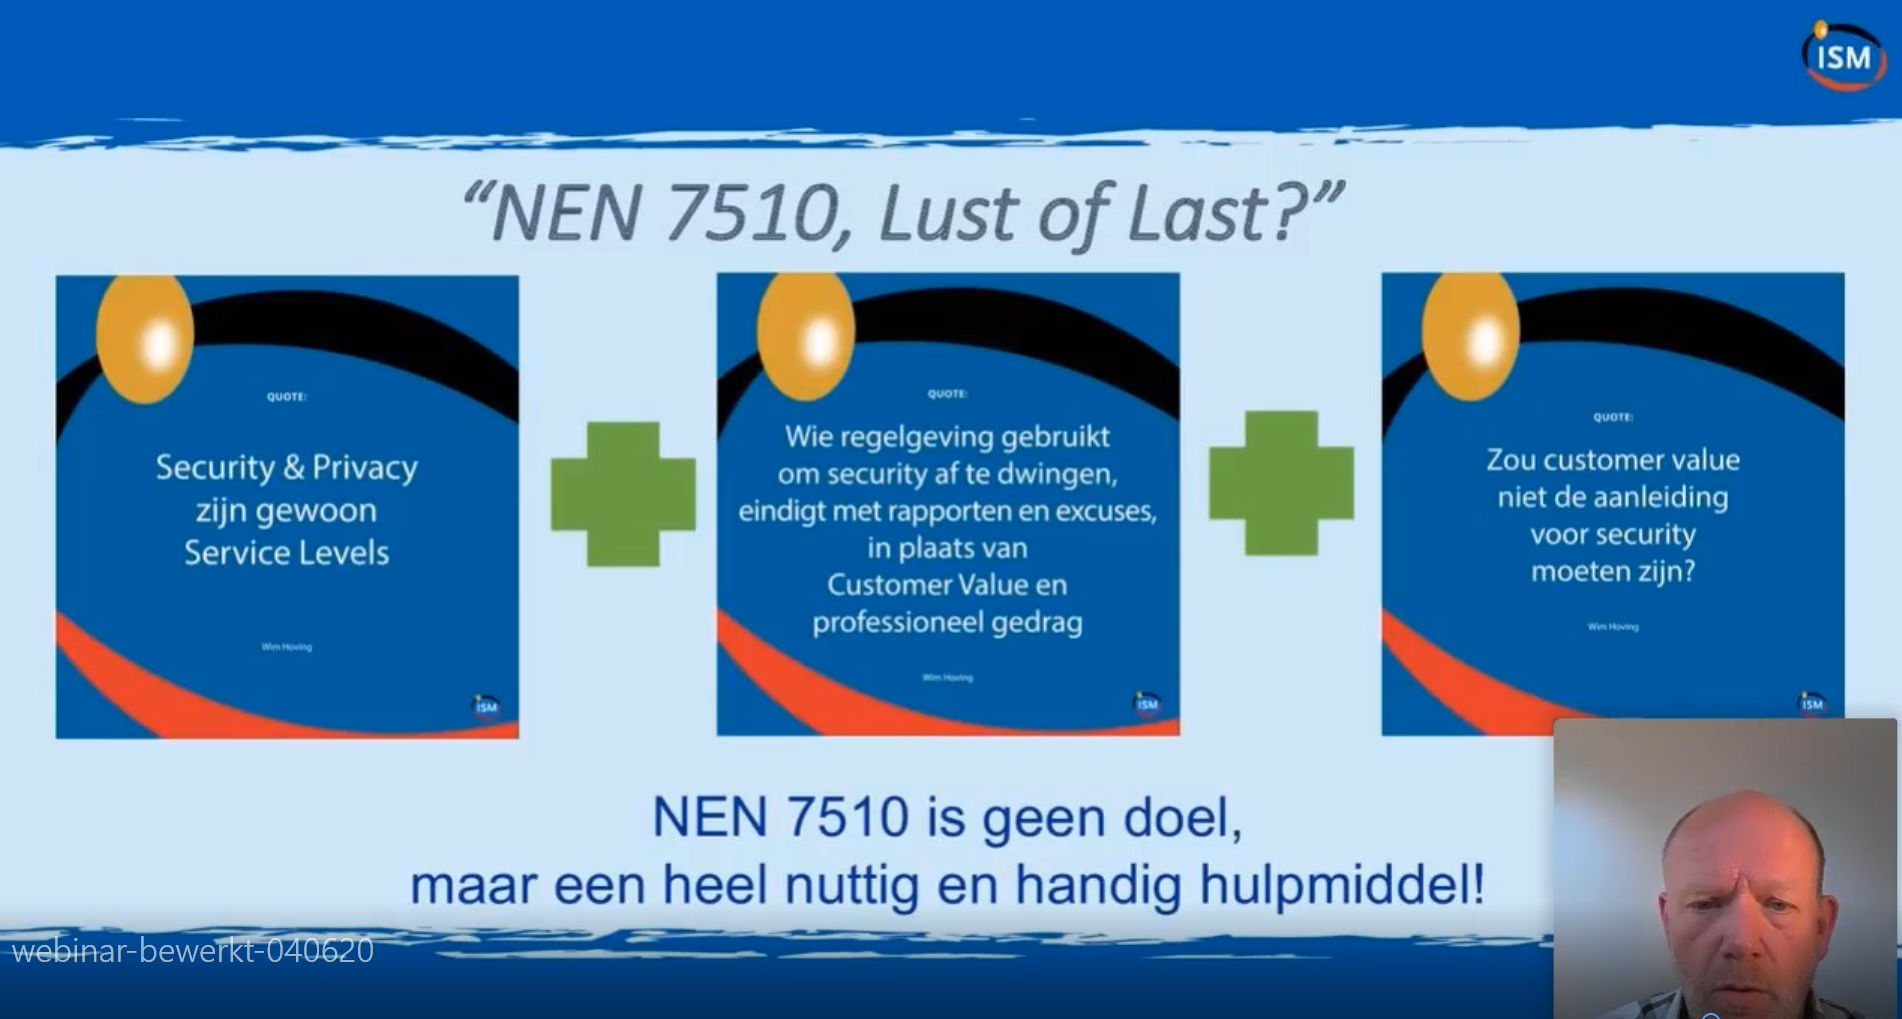 NEN7510 Lust of Last